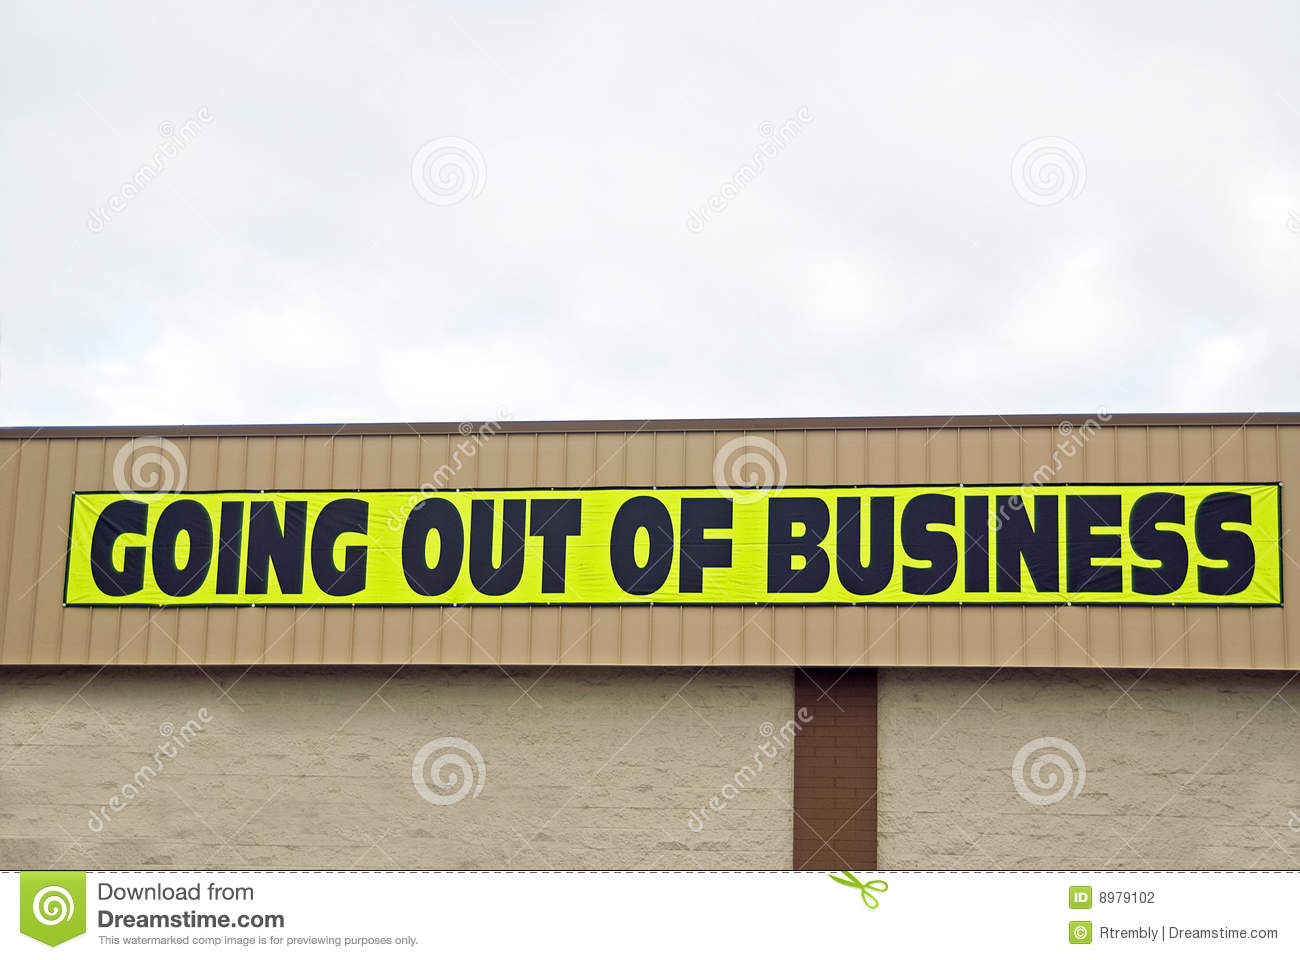 how to find businesses going out of business